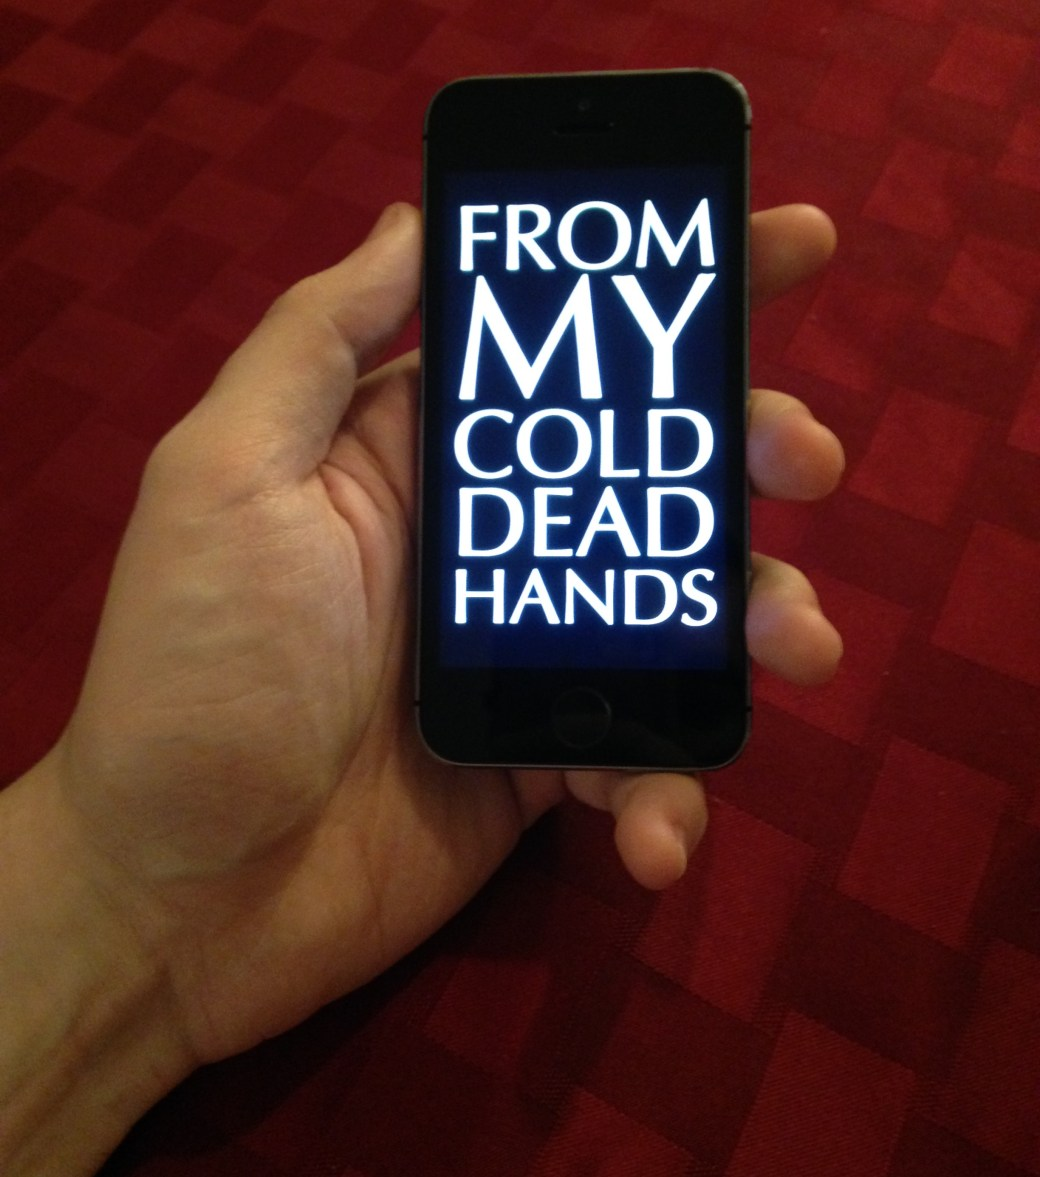 """A closeup of a hand holding an iPhone. The iPhone's screen says, """"FROM MY COLD DEAD HANDS"""" in a dramatic font."""